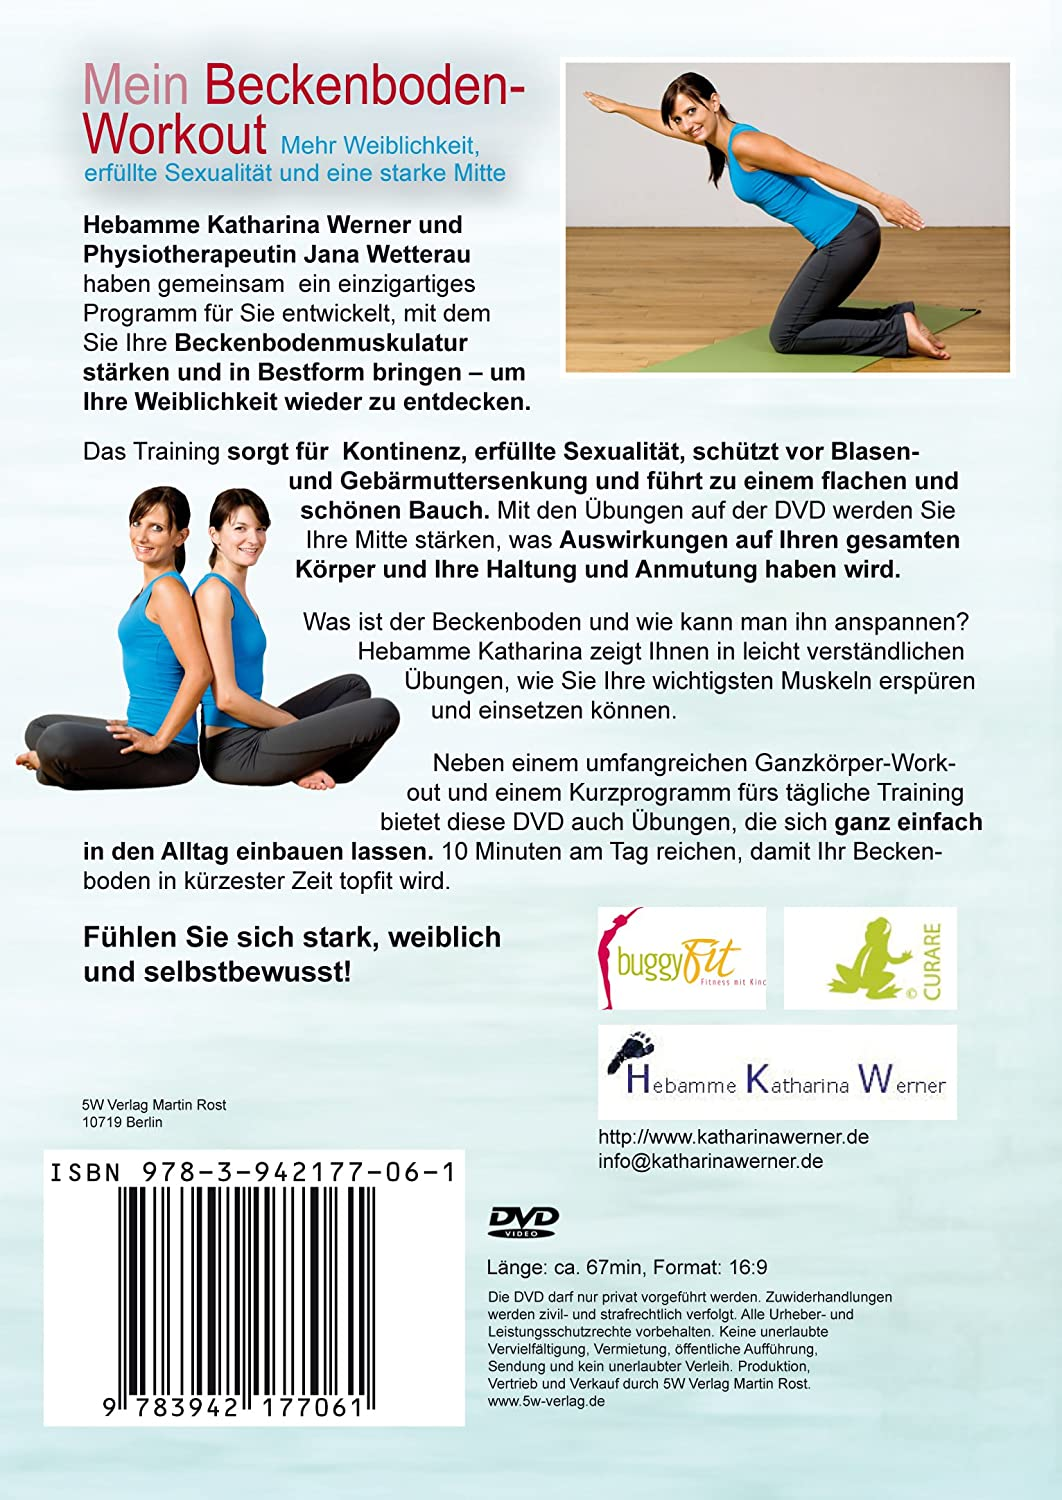 Amazon.com: Mein Beckenboden-Workout: Movies & TV